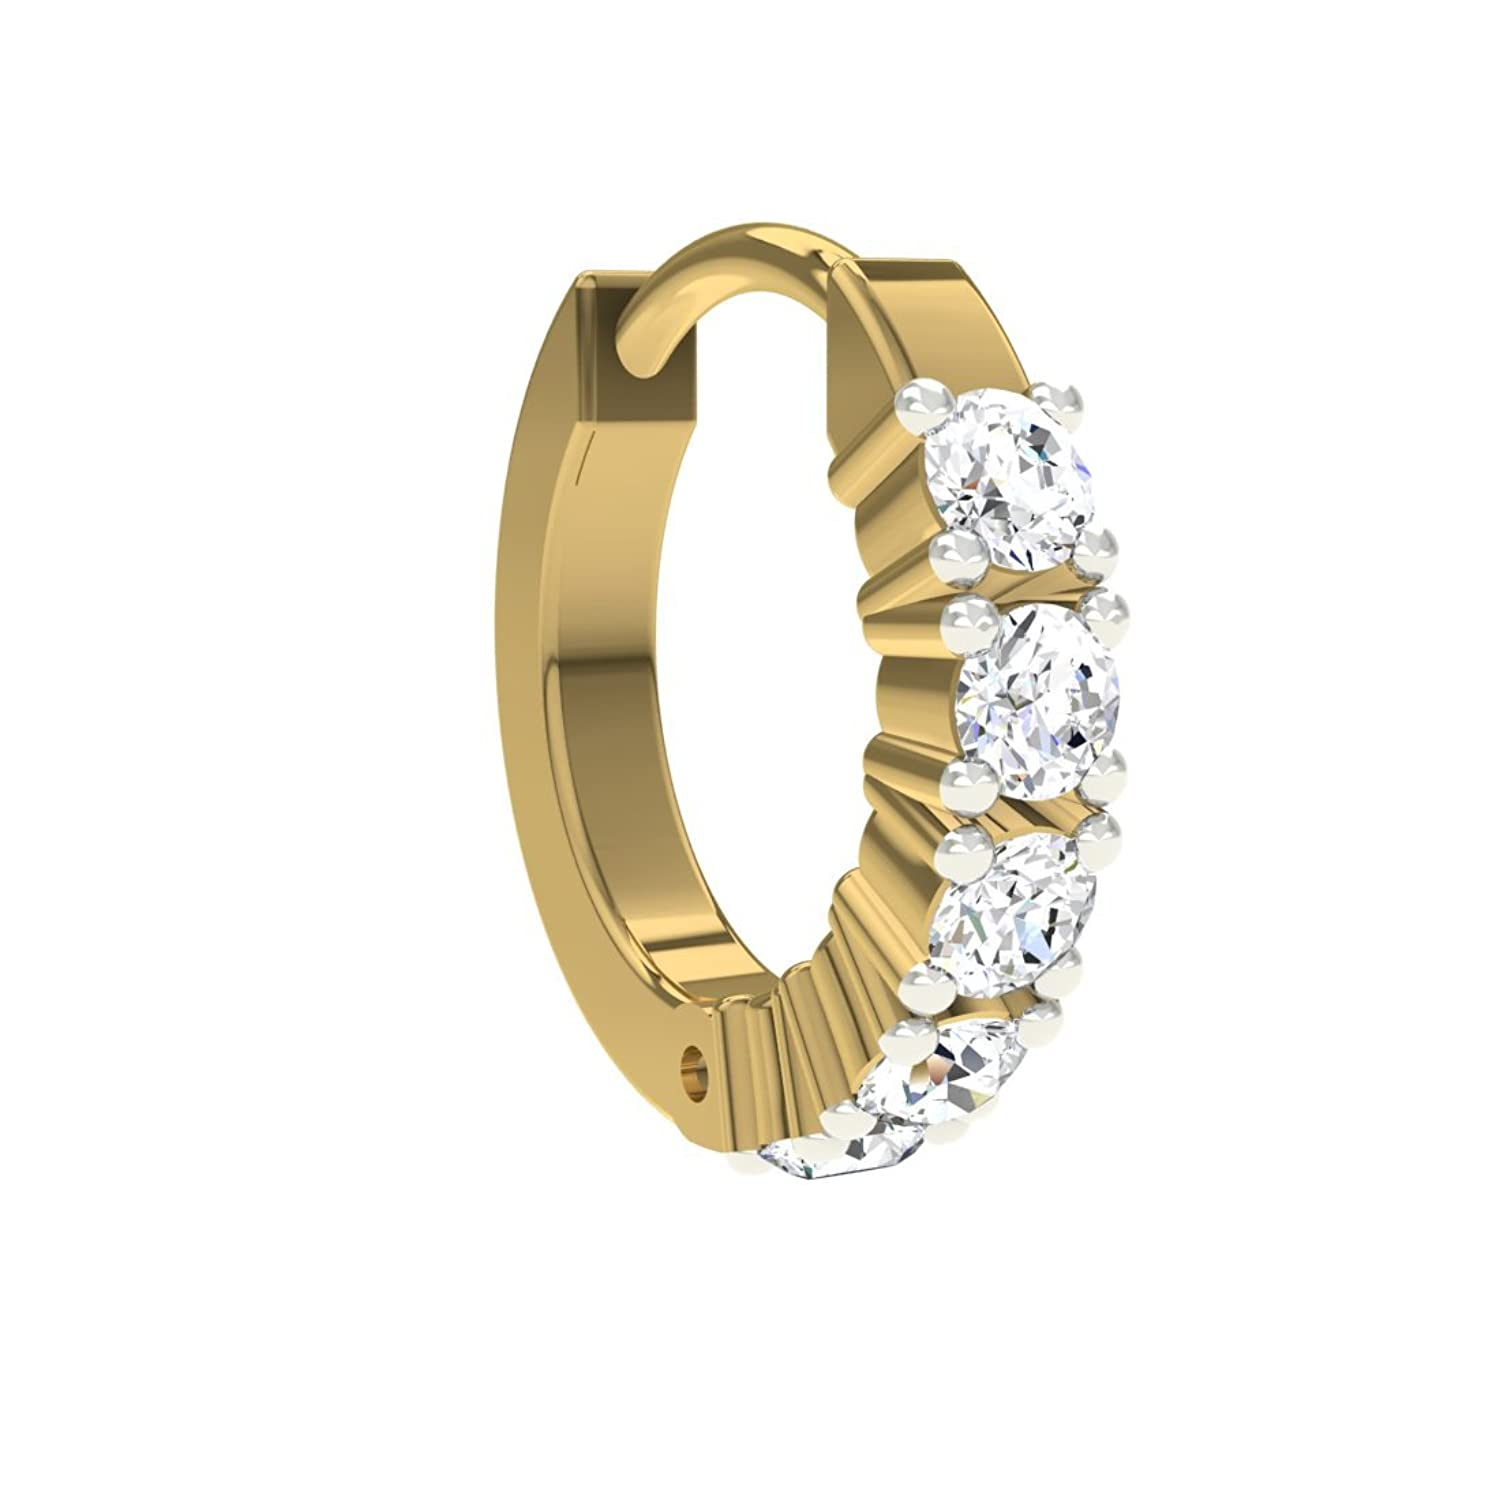 prices low at yellow buy and ring india dp diamond store in amazon online rings gold jewellery whp